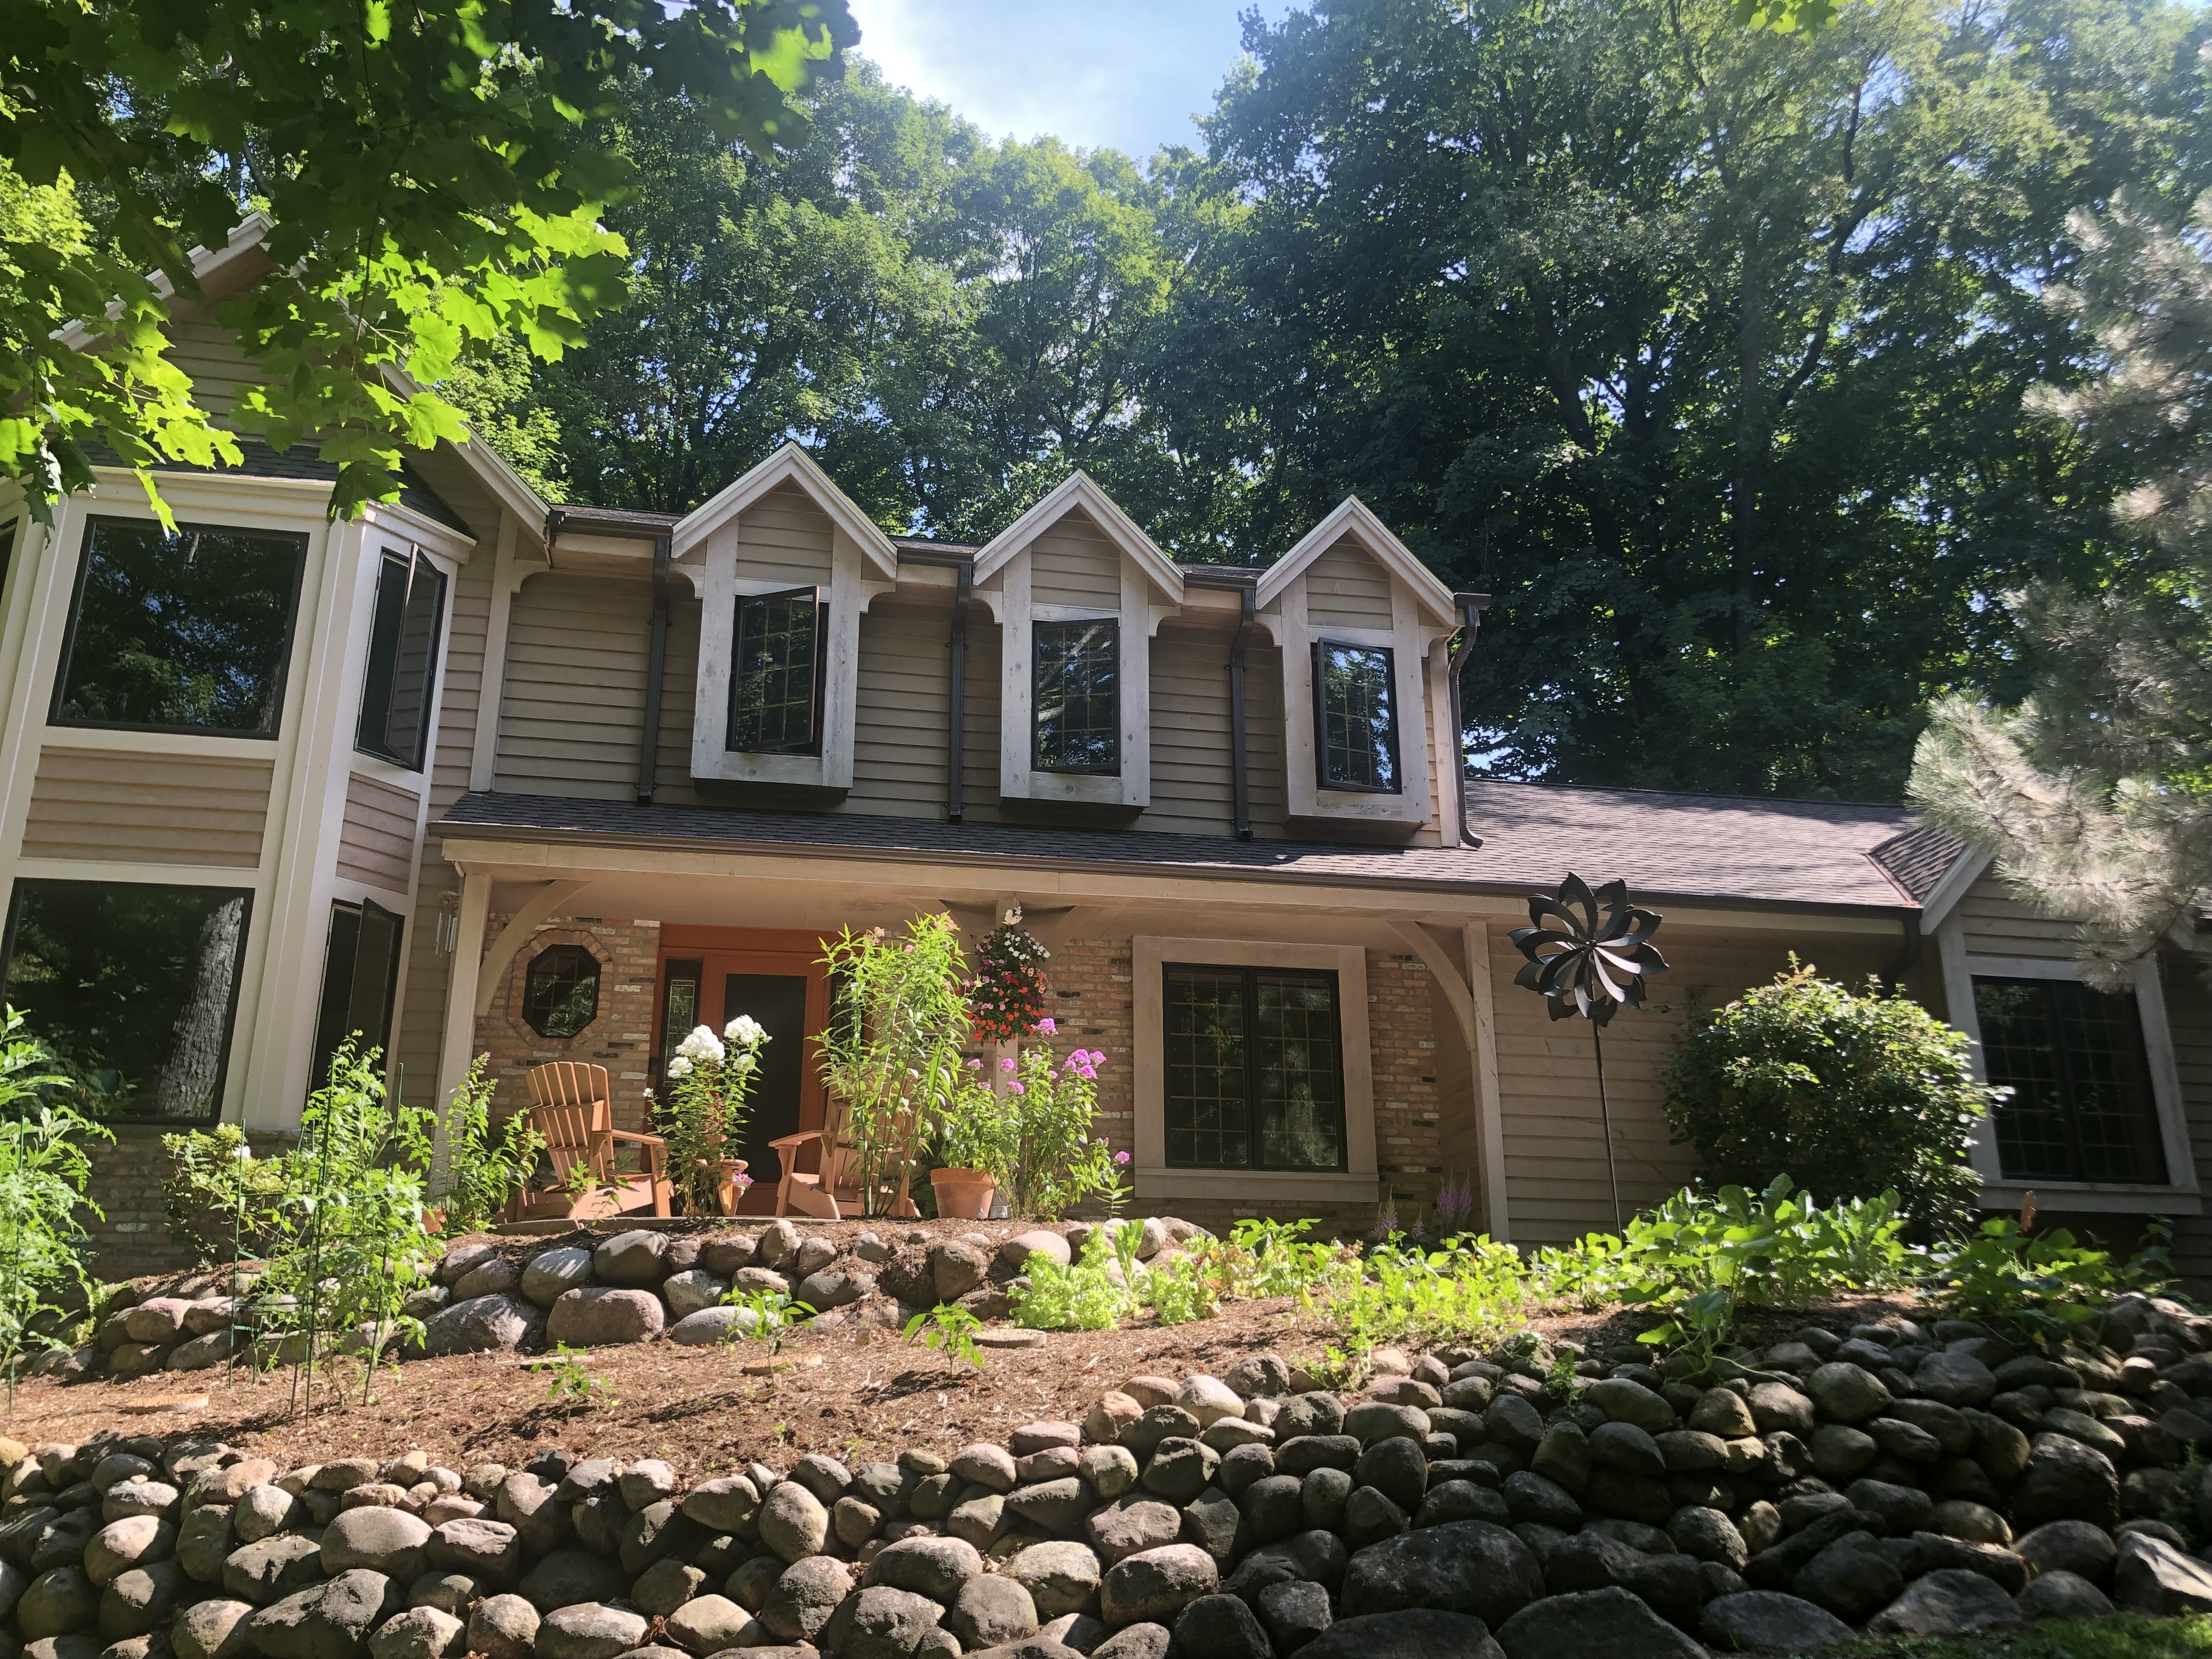 Wisconsin Roofing LLC | Brookfield | Upgraded CertainTeed Landmark PRO Shingles | Burnt Sienna | New gutters | New RAINDROP Leaf Protection | Extensive Landscaping Front